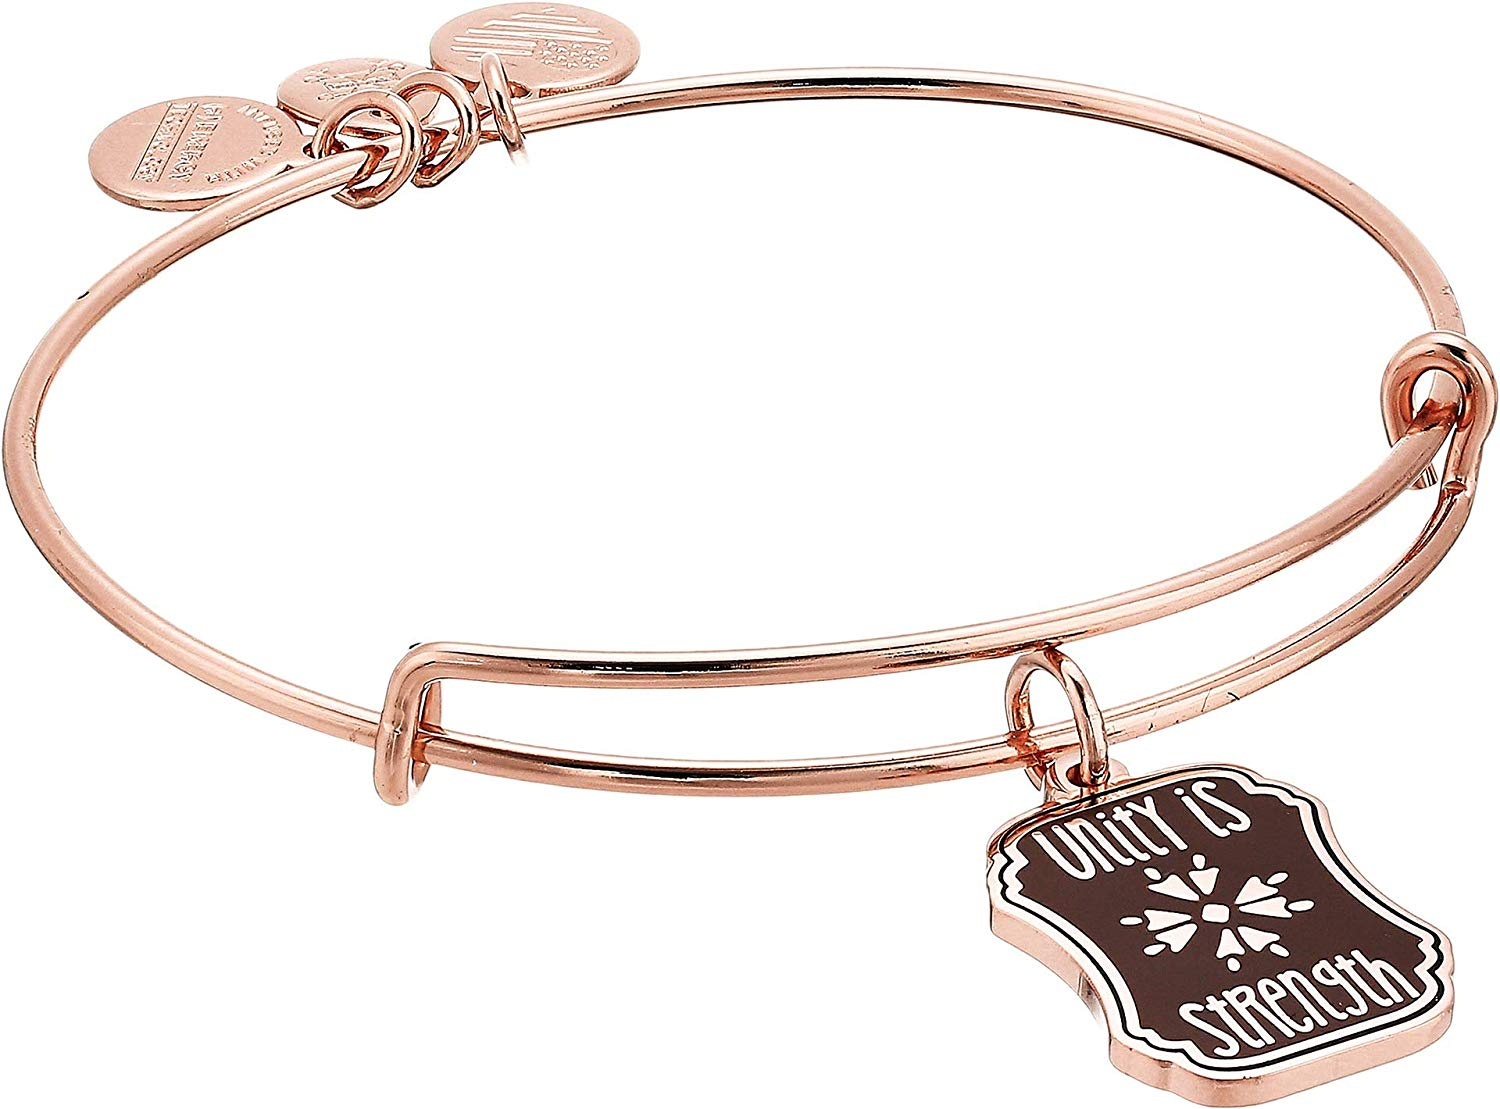 Alex and Ani Words are Powerful Unity is Strength Bangle - A18EBWAP05SR